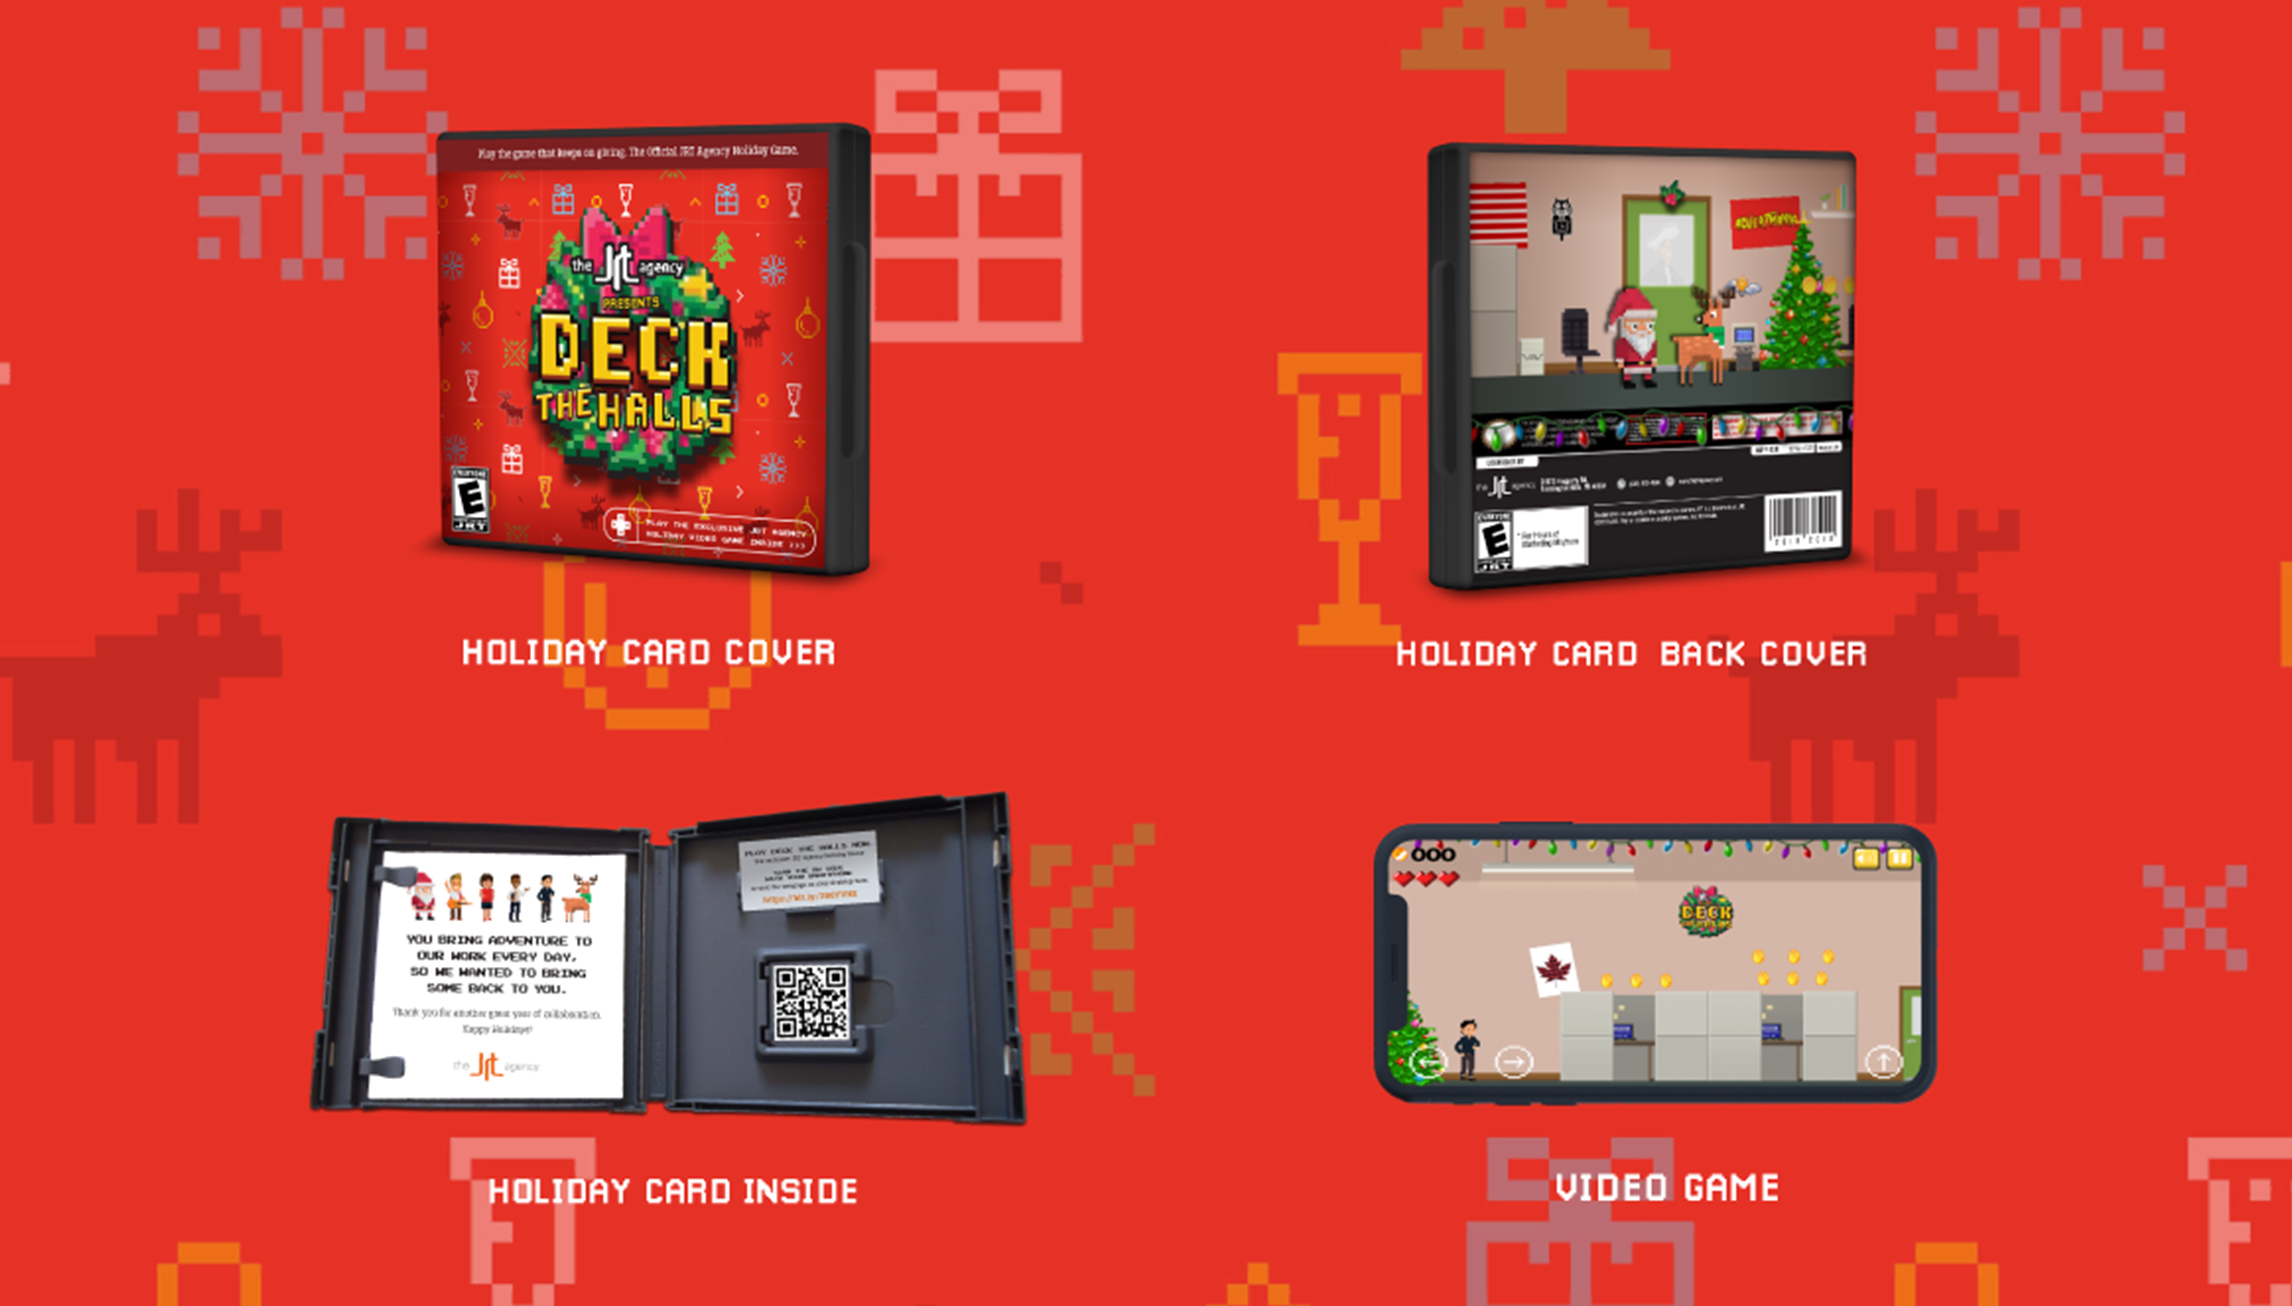 ADWEEK Recognizes JRT's Interactive Holiday Fun